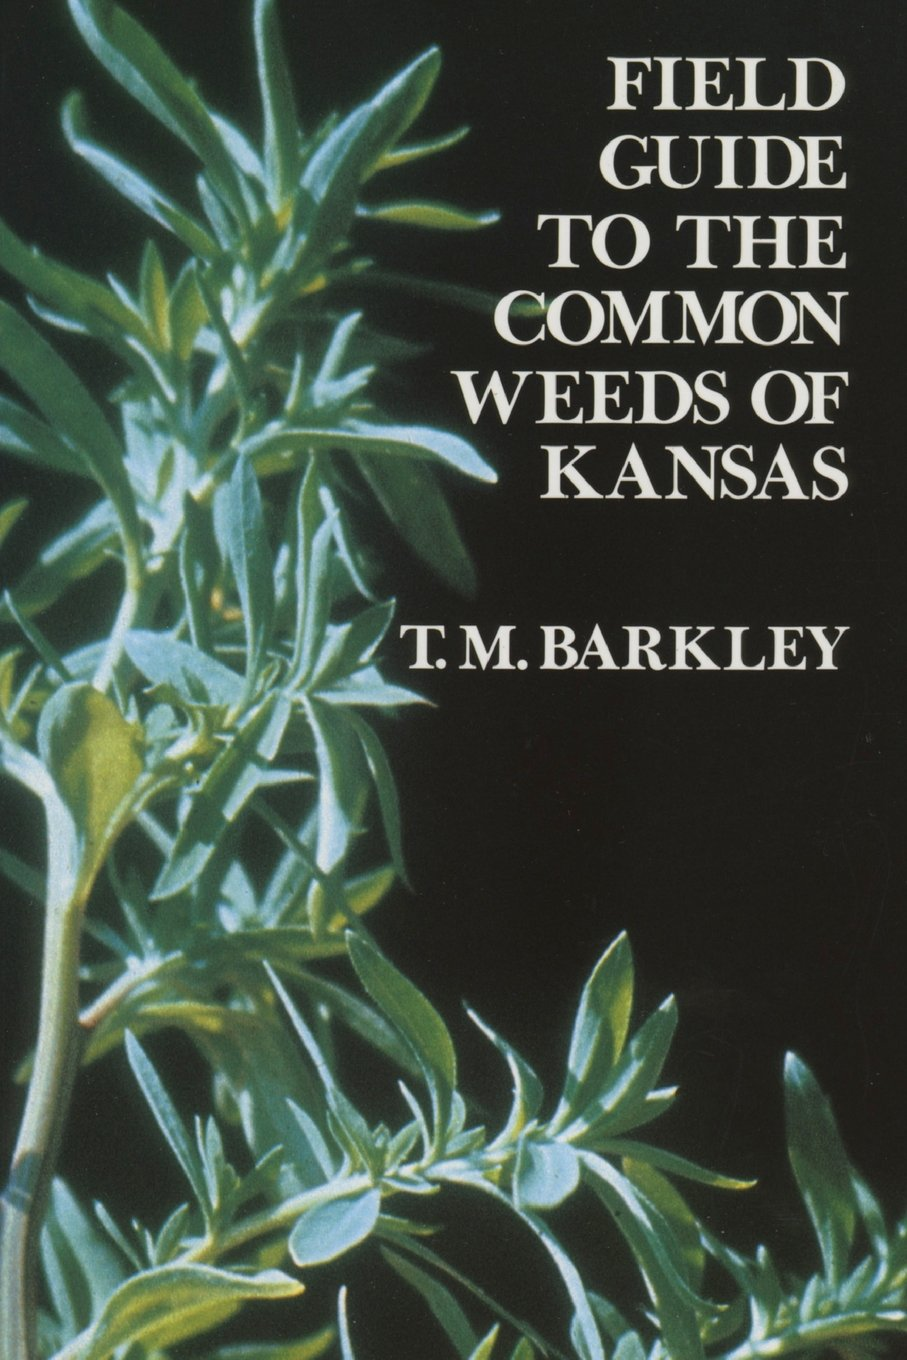 Field Guide to the Common Weeds of Kansas